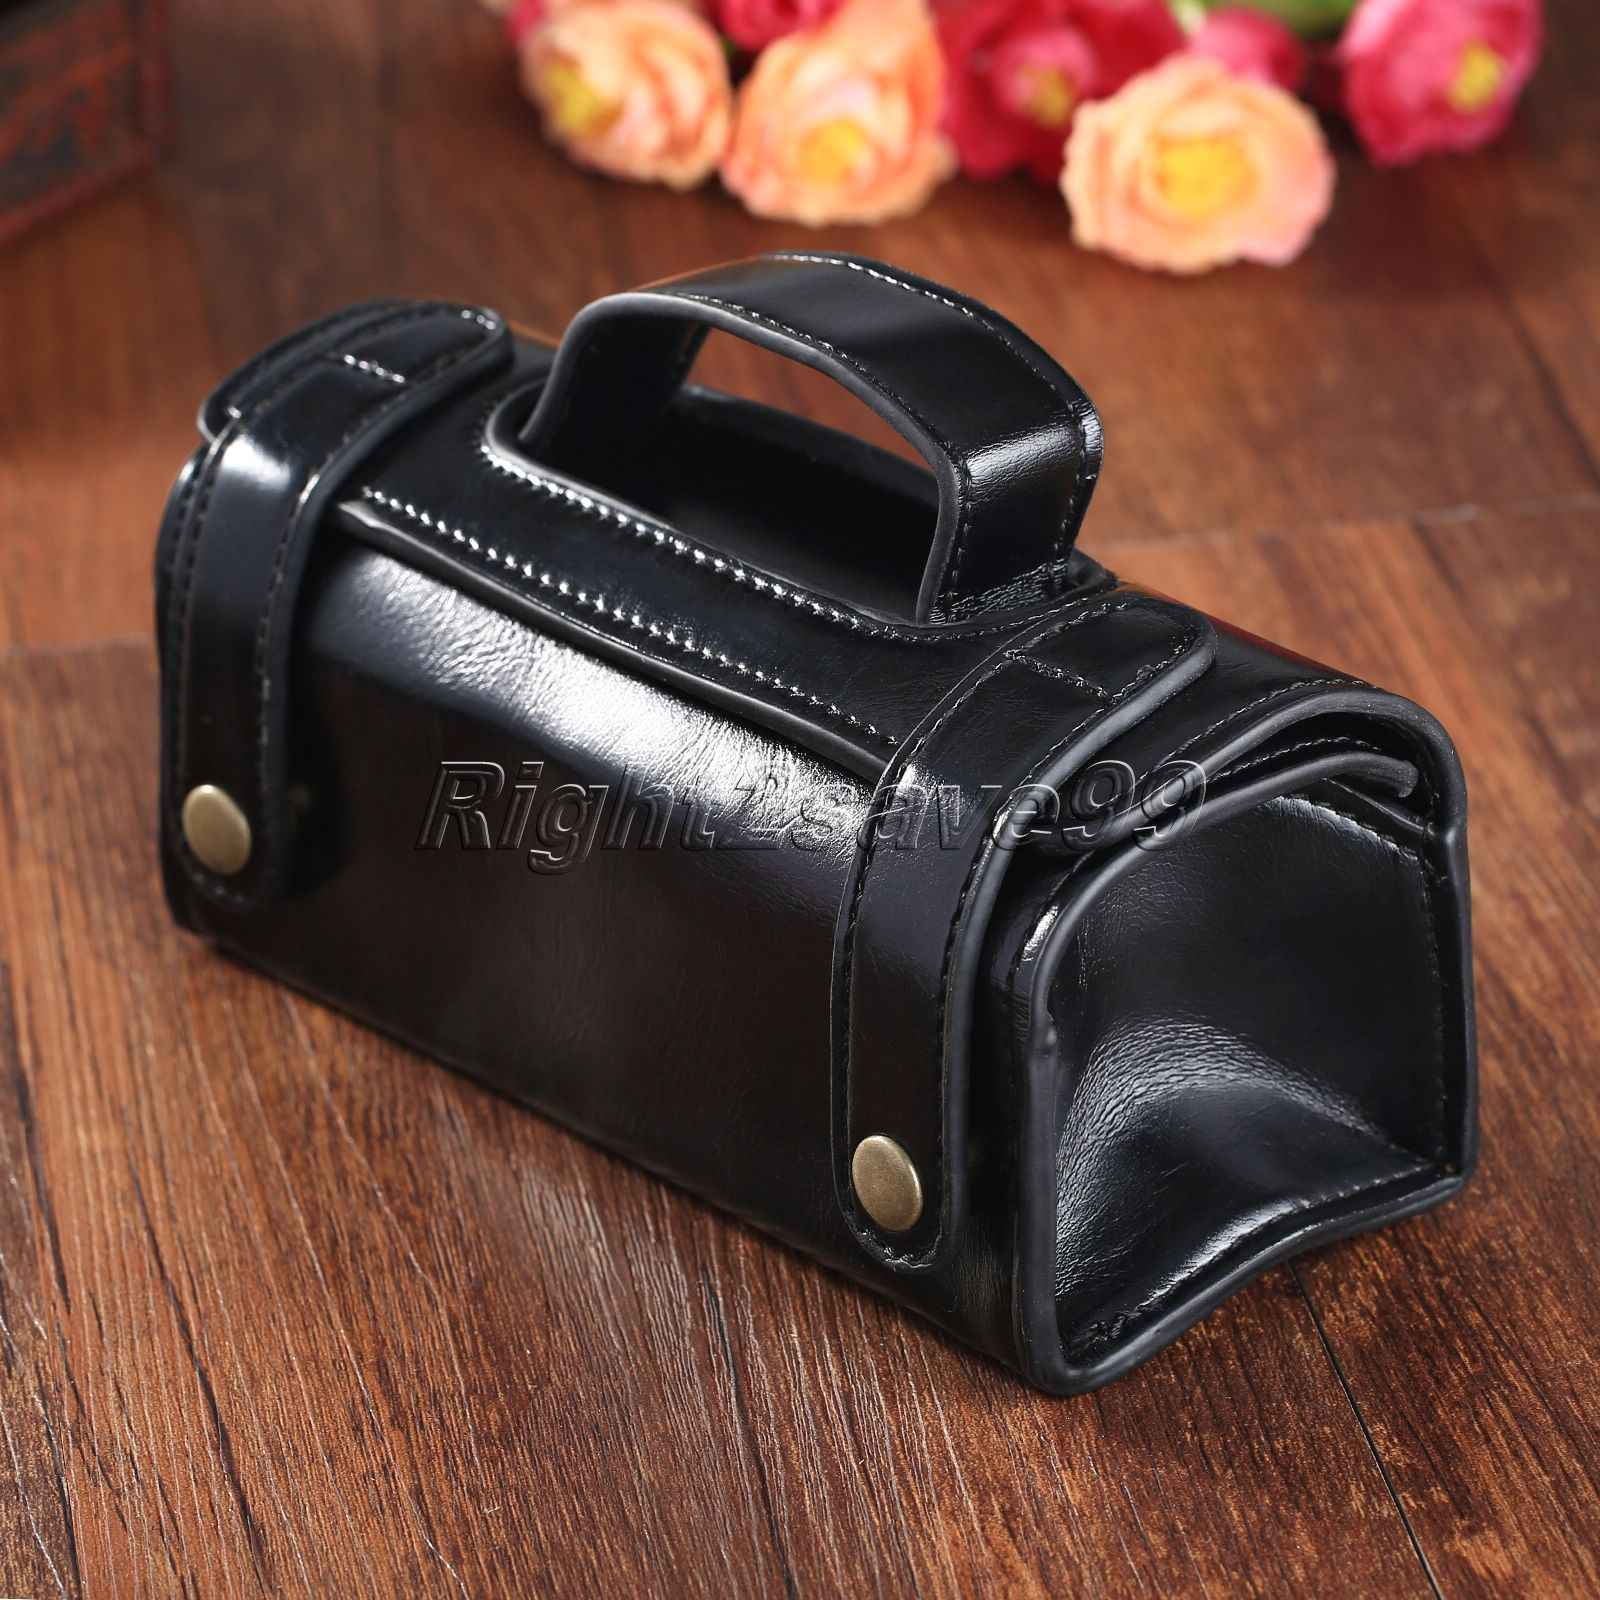 3cb3725dad 2017 Professional Barber Salon Shave Razor Brush Bamboo Handle Tool  BagTravel Toiletry Bag Shaving Wash Case